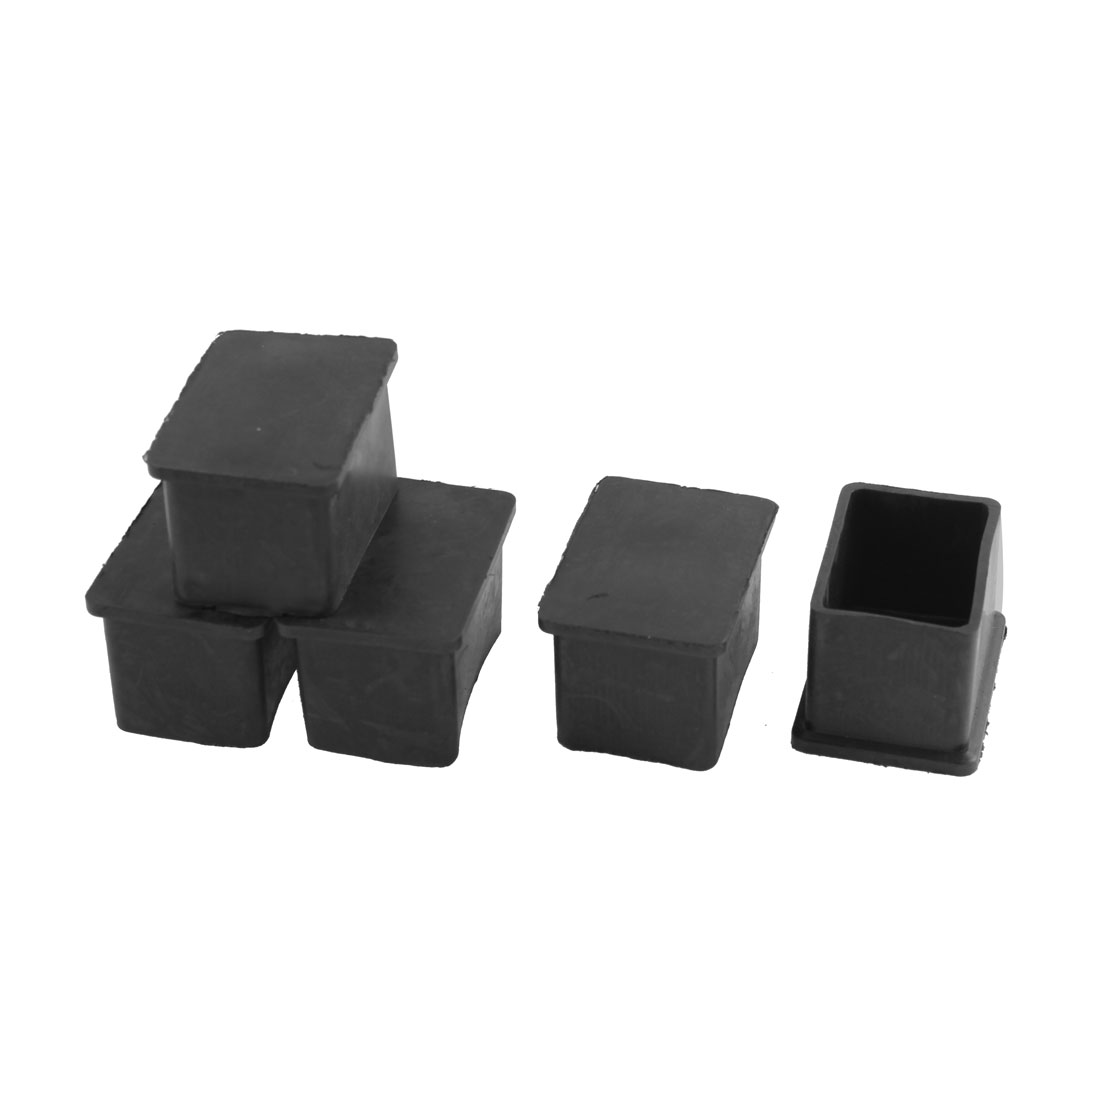 plastic inserts for metal chair legs custom upholstered dining chairs rectangular rubber plugs bing images